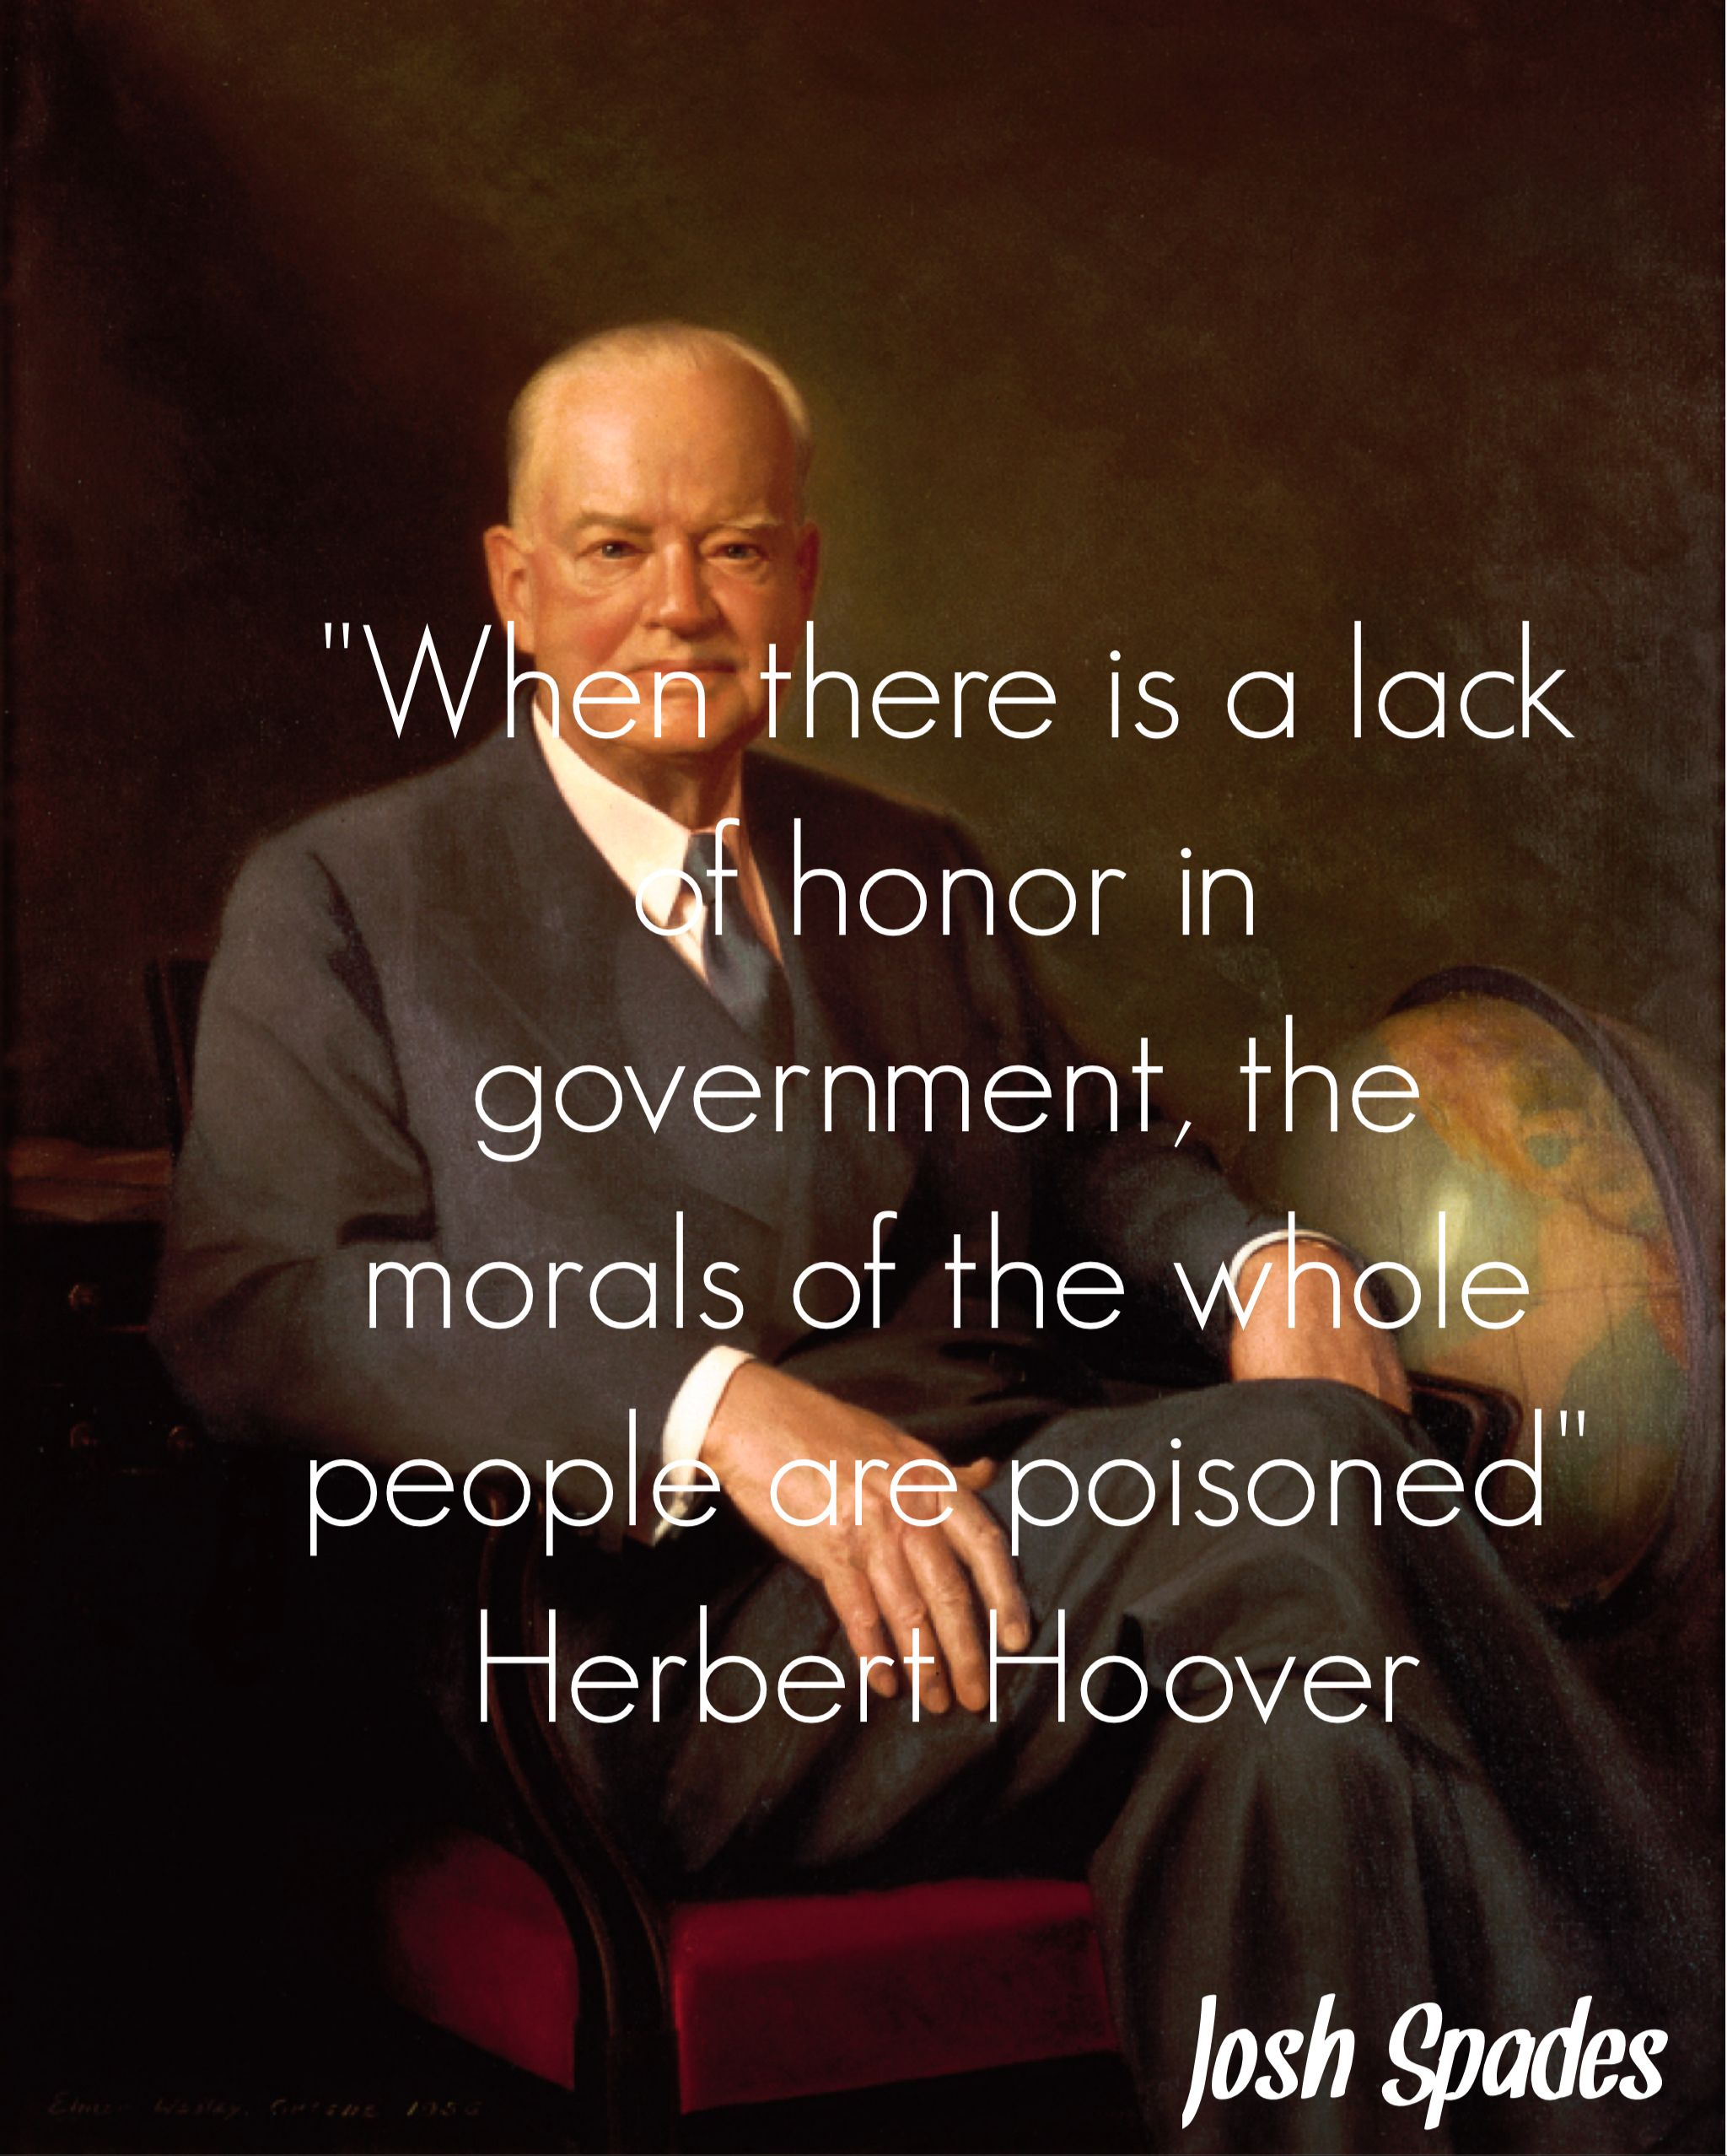 herbert hoover presidents quotes quotes white